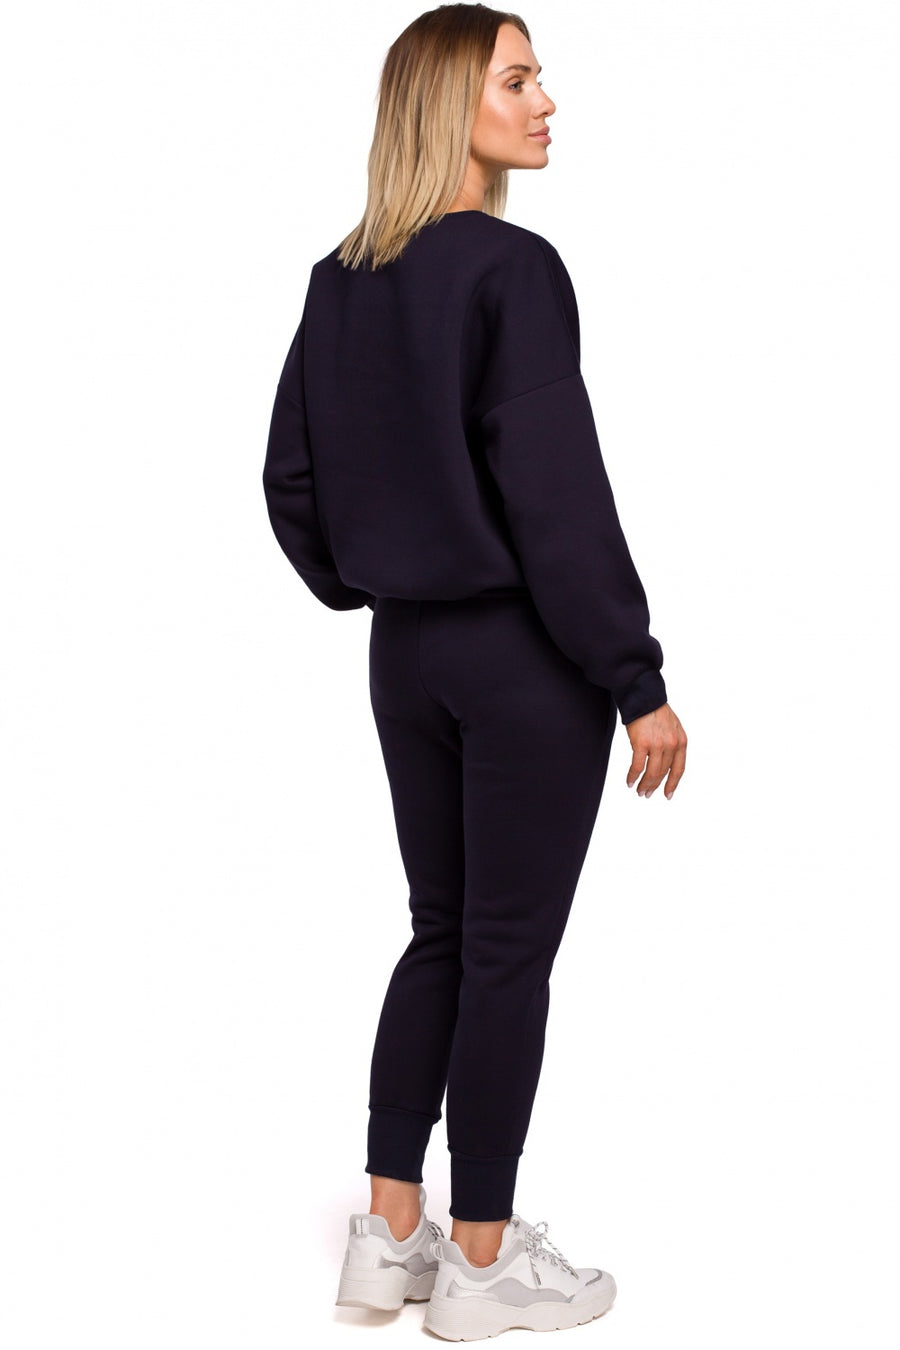 Tracksuit trousers model 147432 Moe